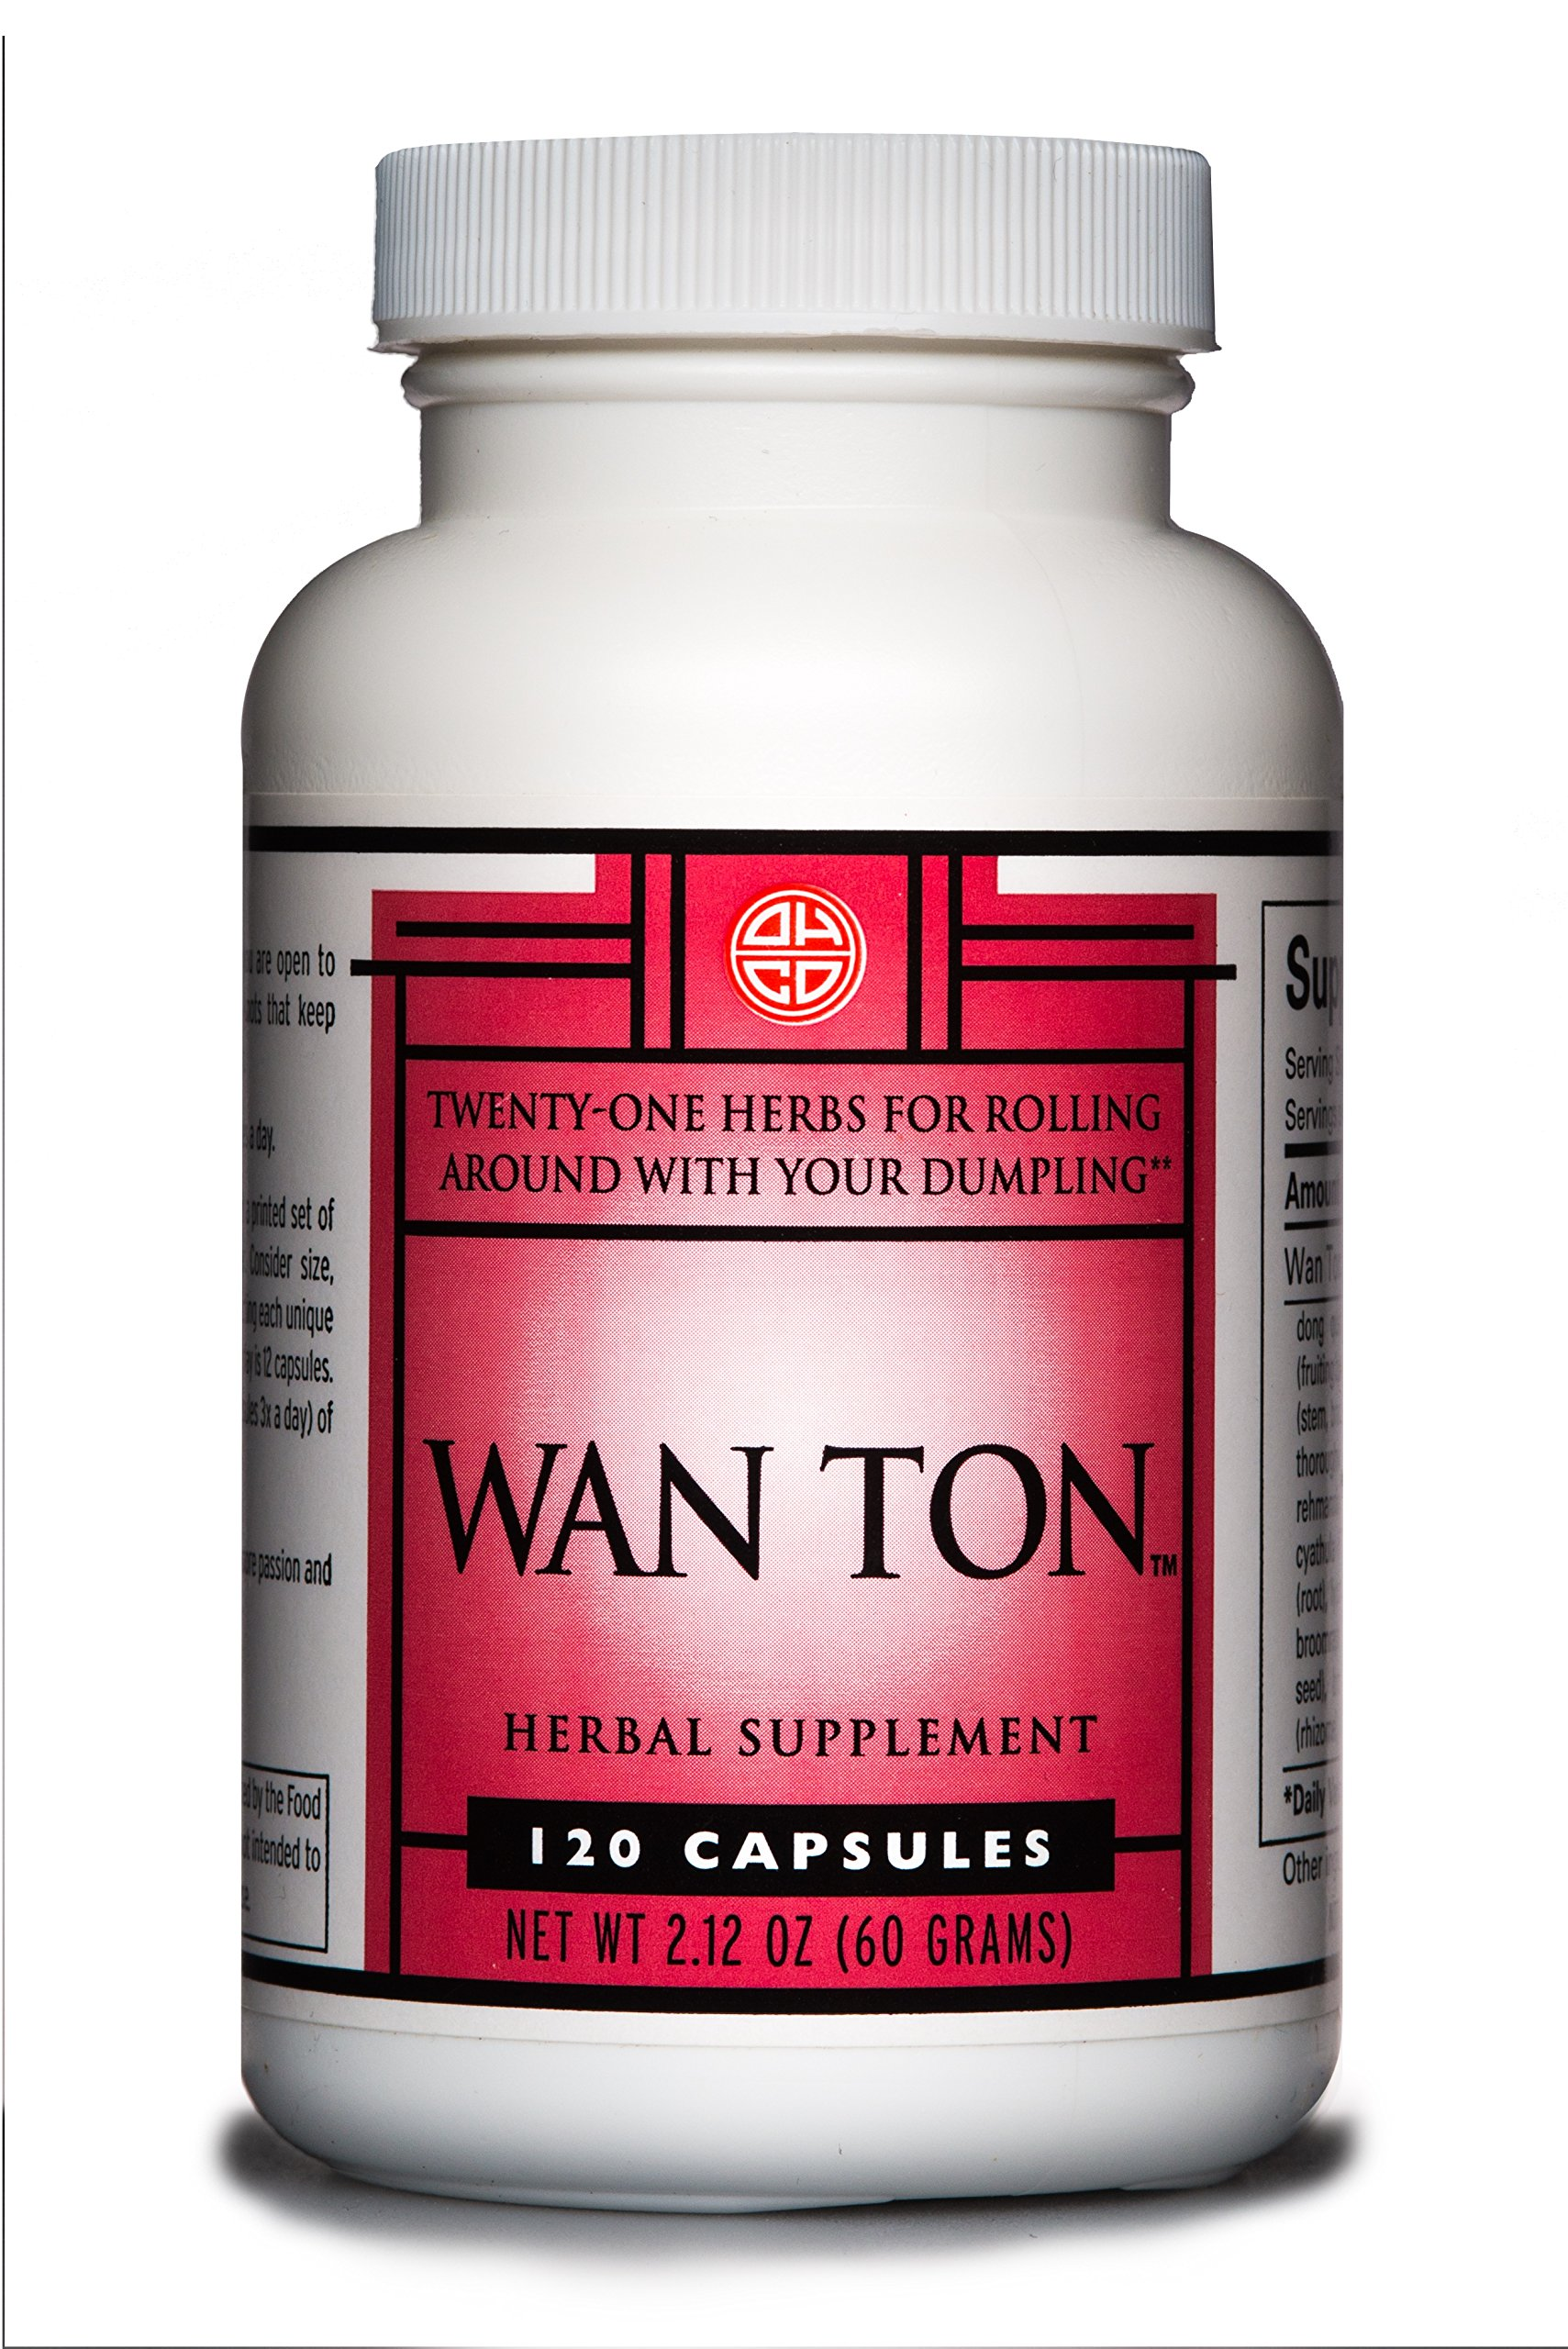 OHCO Wan Ton - Alternative Medicine Herbal Supplement for Sexual Wellness, Libido, Enhanced Sexual Energy, Depression and Stress Support - Natural Remedy for Men and Women {120 Capsules}